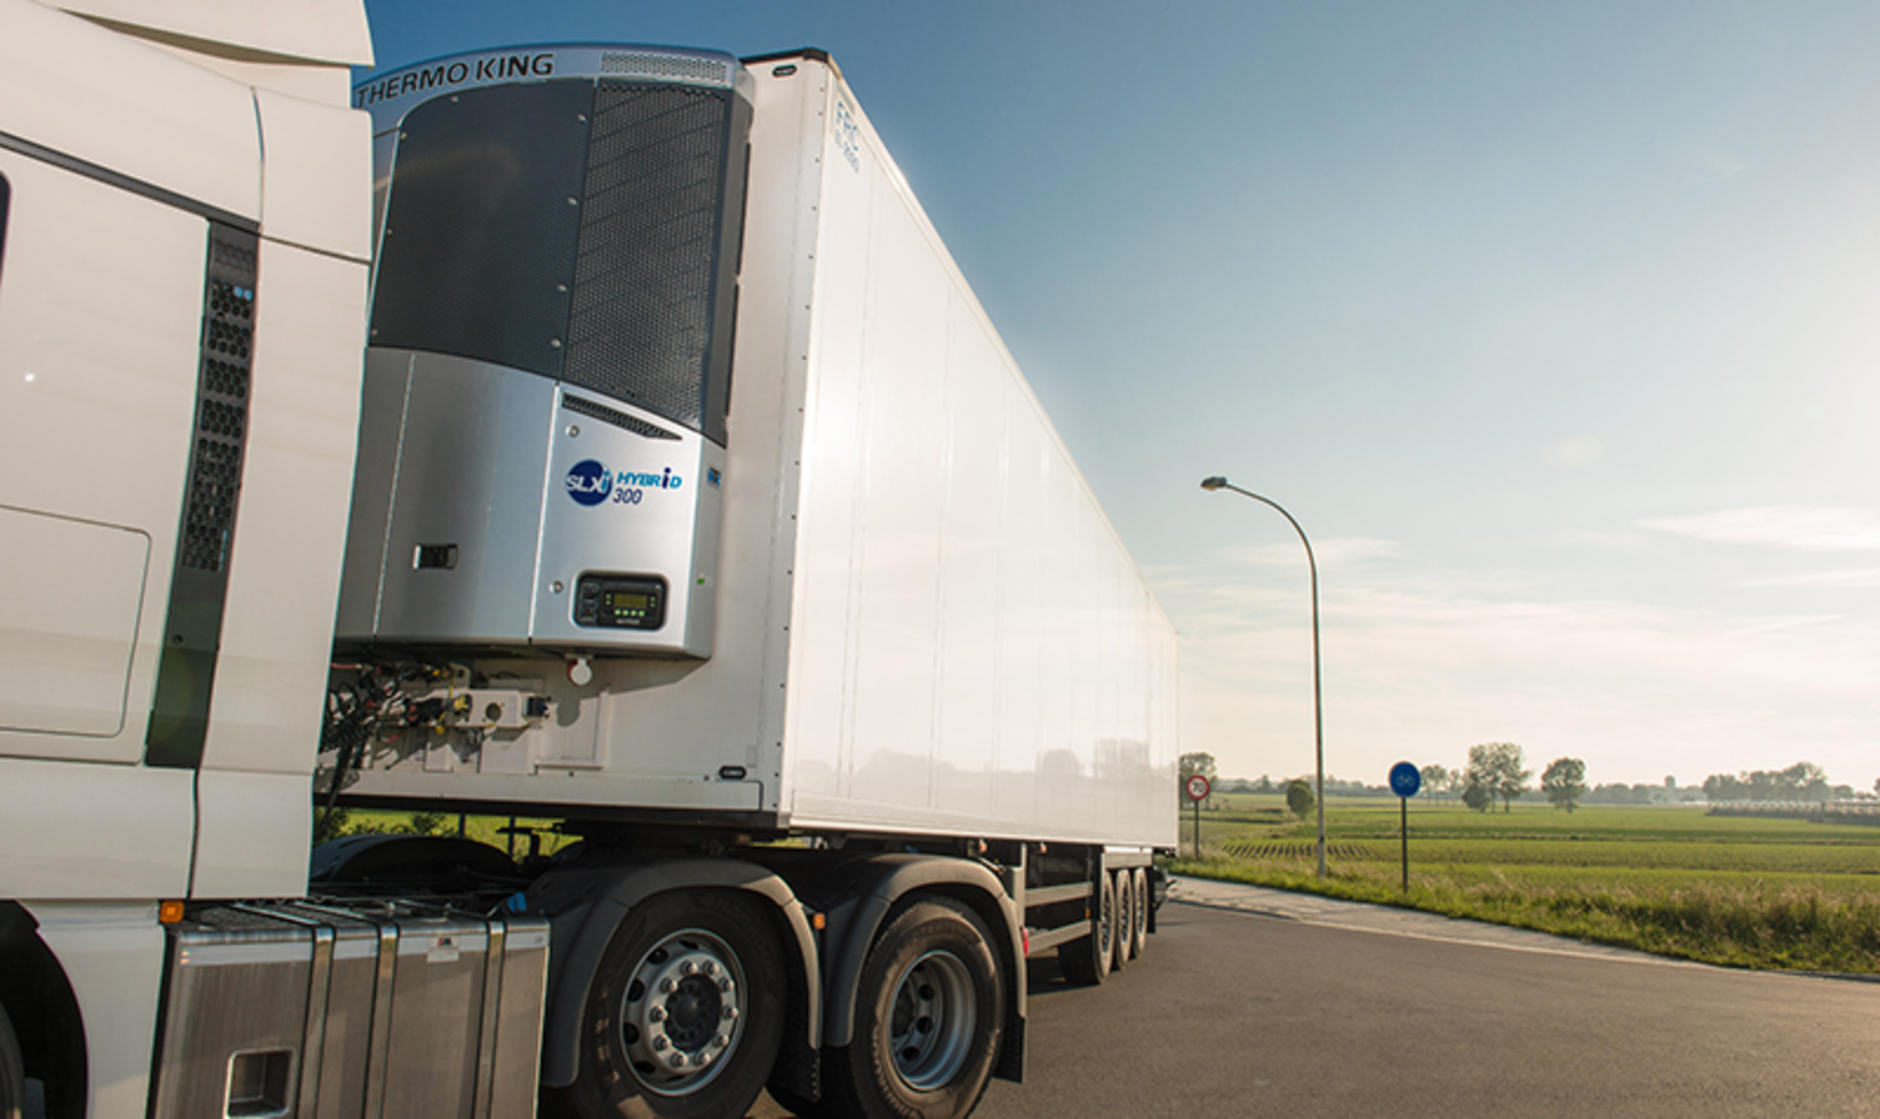 Thermo King hybrid drive refrigerated trailer hits the